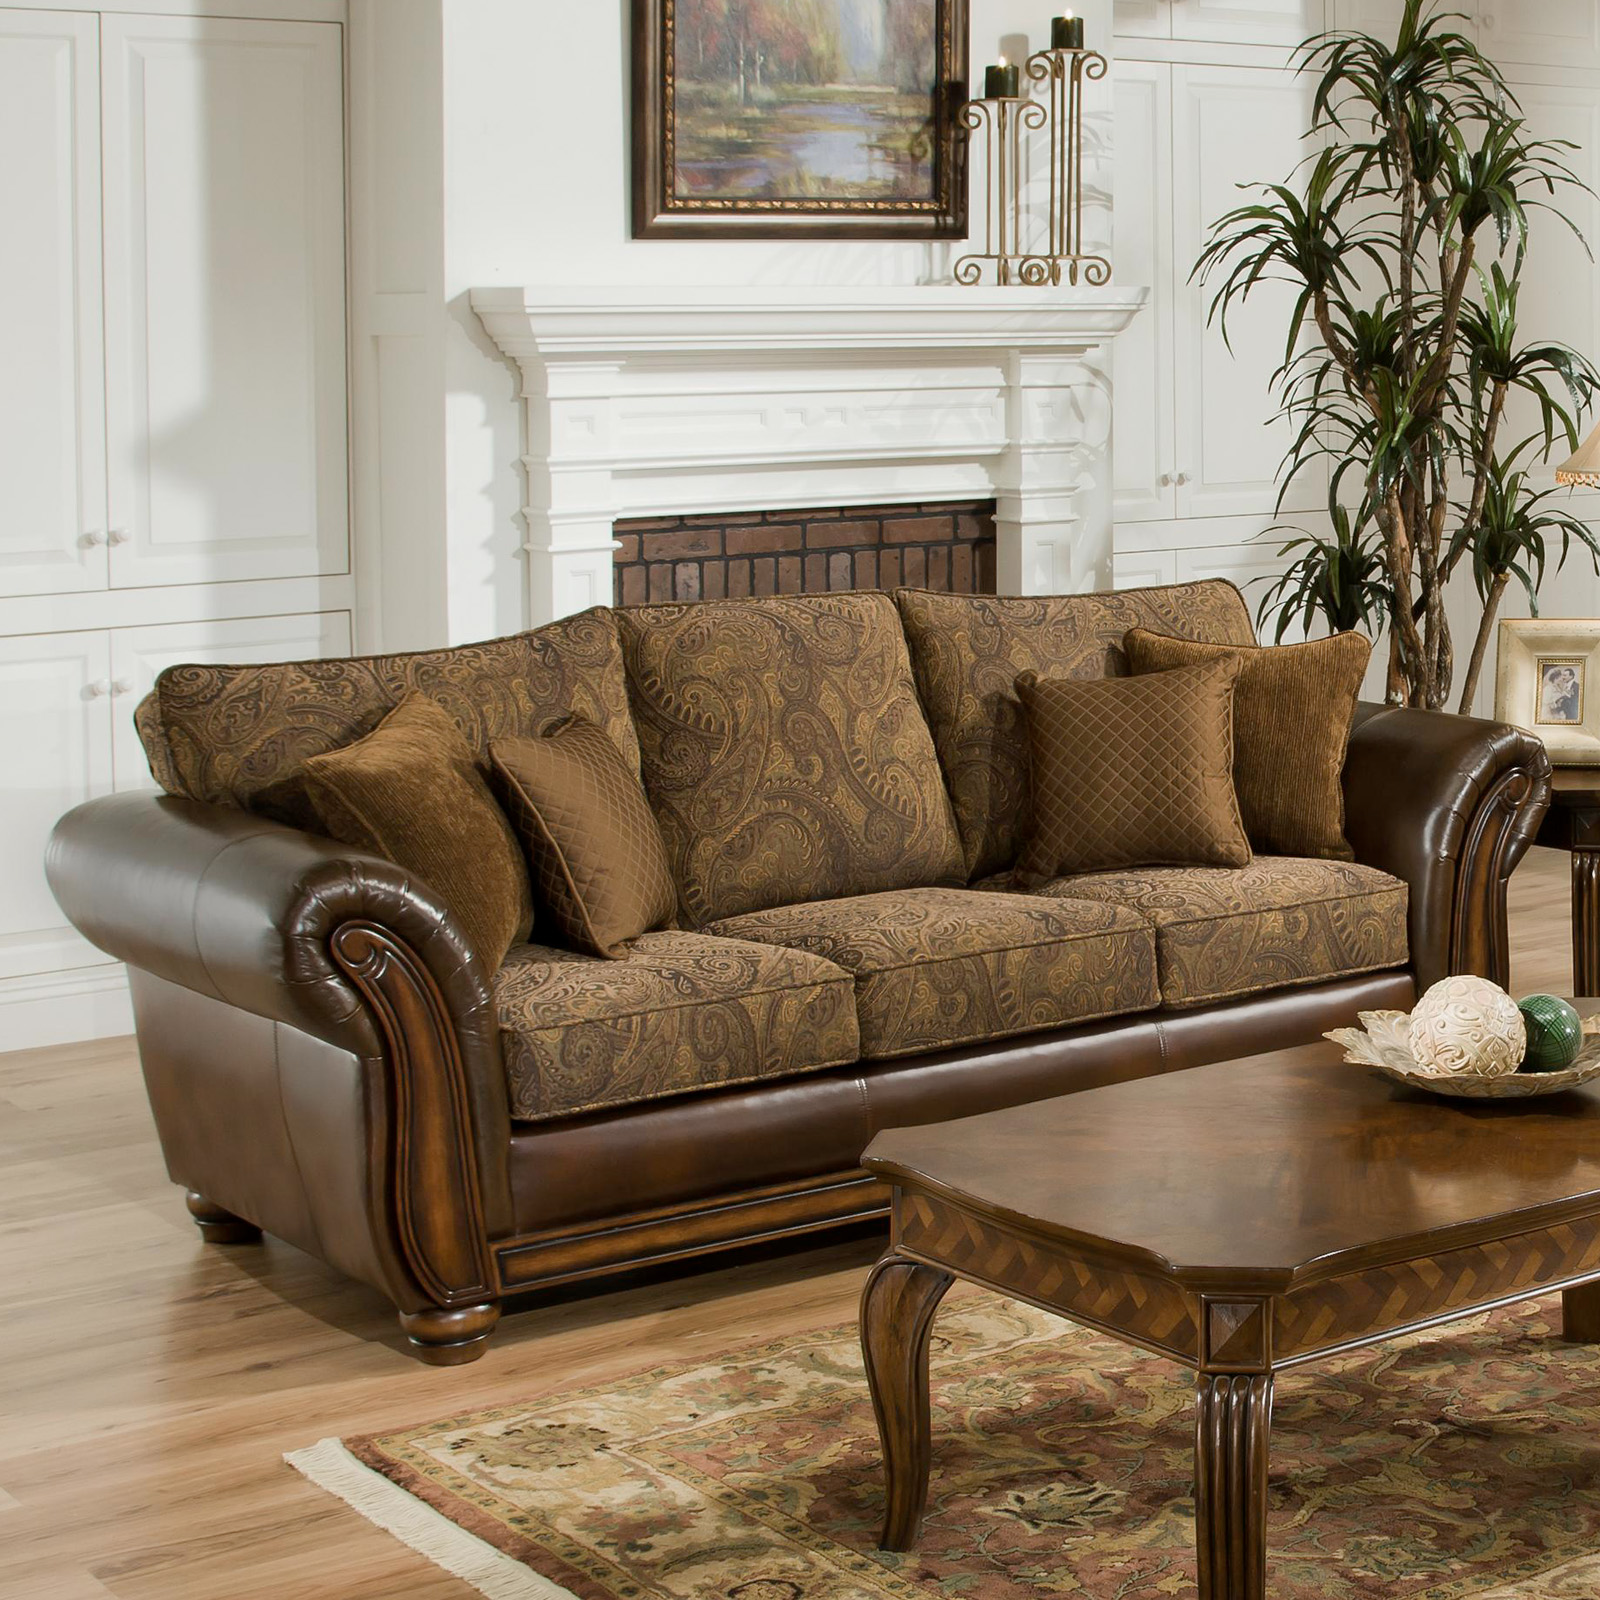 Simmons Zephyr Vintage Leather And Chenille Sofa With Accent Pillows |  Hayneedle Part 8